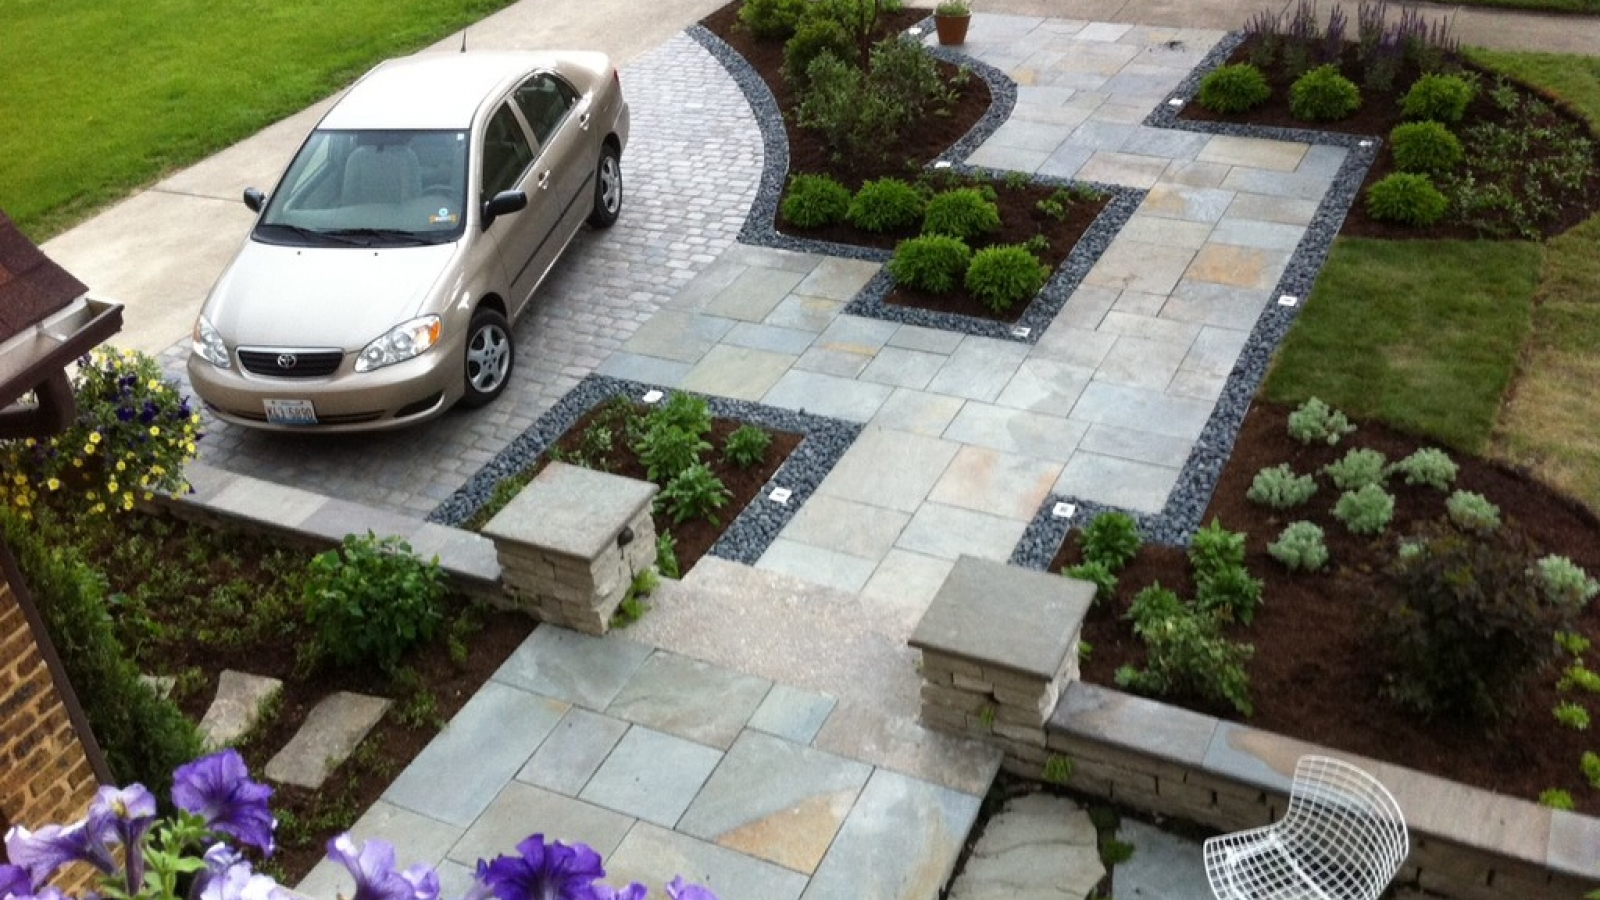 w-1600_h-900_m-cover_s-any__small-driveway-design Driveways Side House Designs on side garden designs, side entrance designs, side walk designs, side courtyard designs, side car designs, side stoop designs, side entry designs, side deck designs, side doors designs,